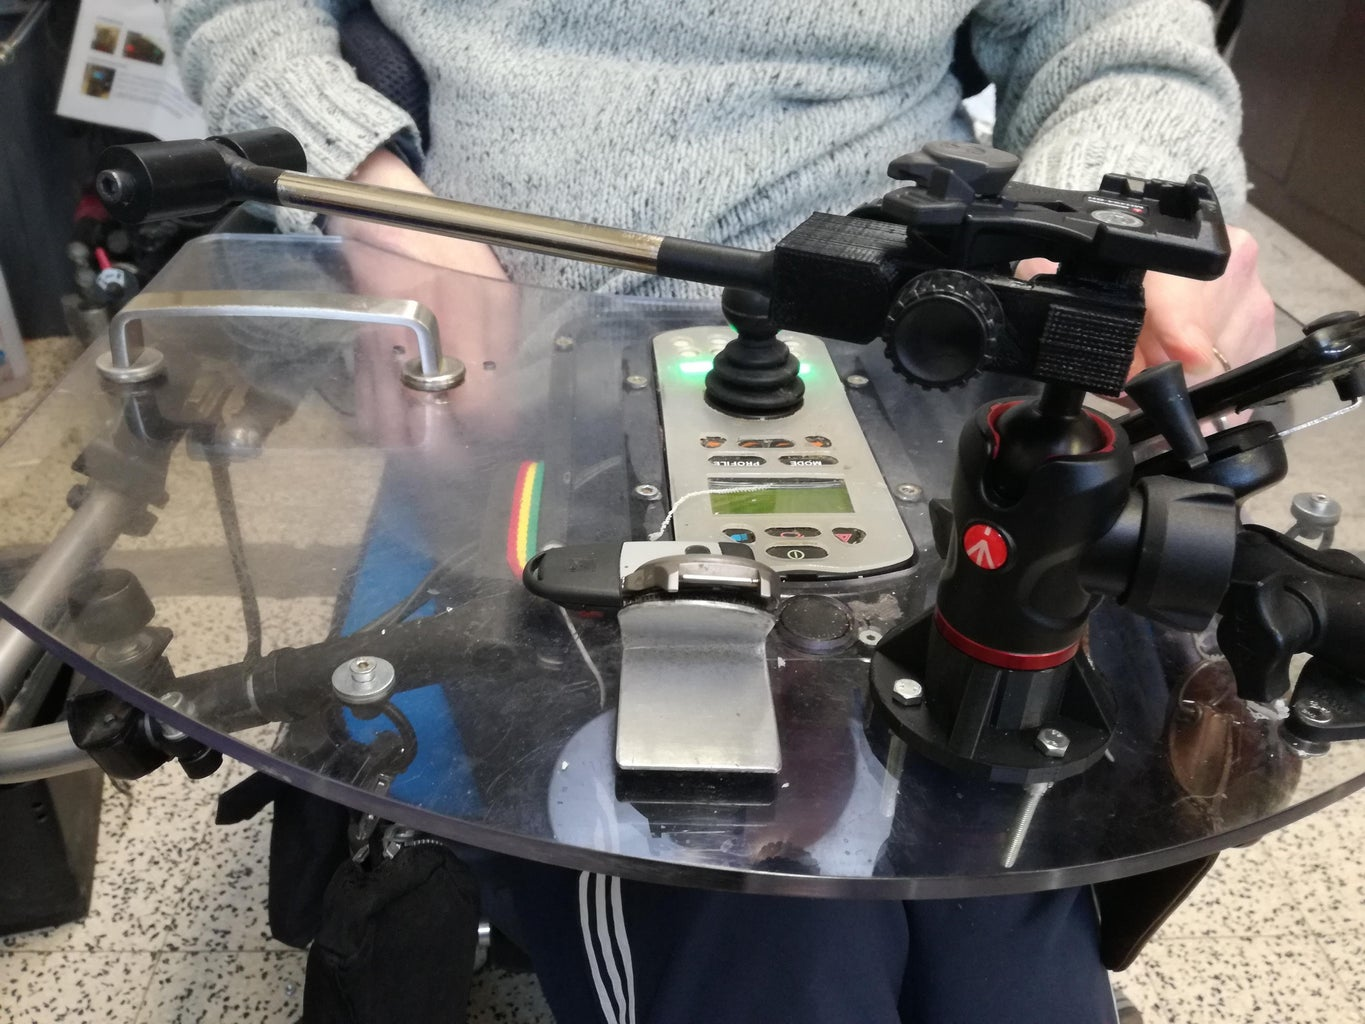 Adapted Camera Holder to Mount on a Wheelchair Tabletop